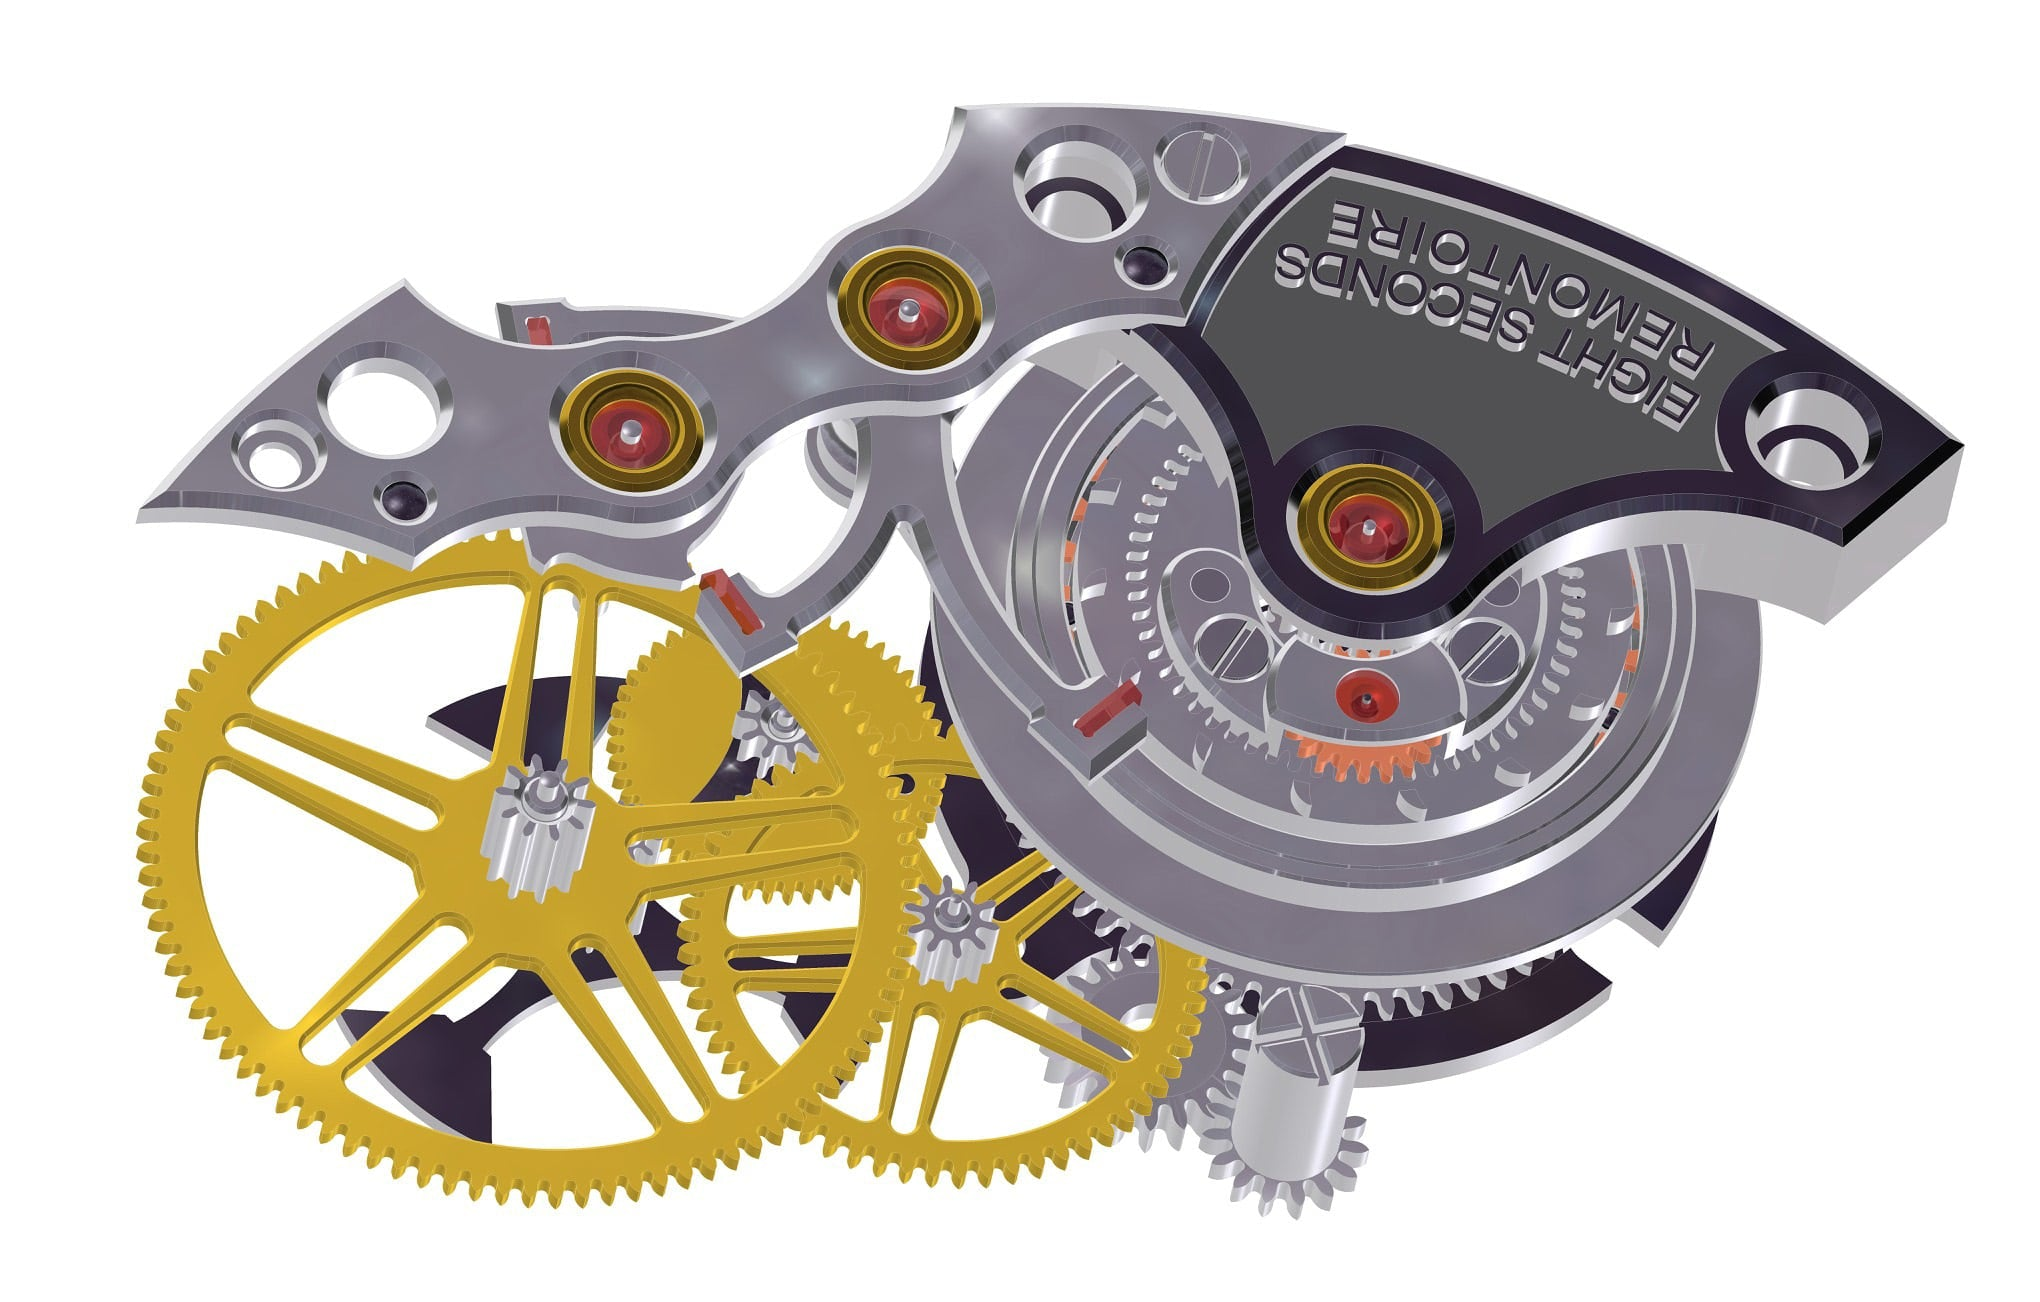 CAD render of remontoire mechanism used inside Grönefeld watches in Chasing Accuracy in Mechanical Wristwatches for A Collected Man London